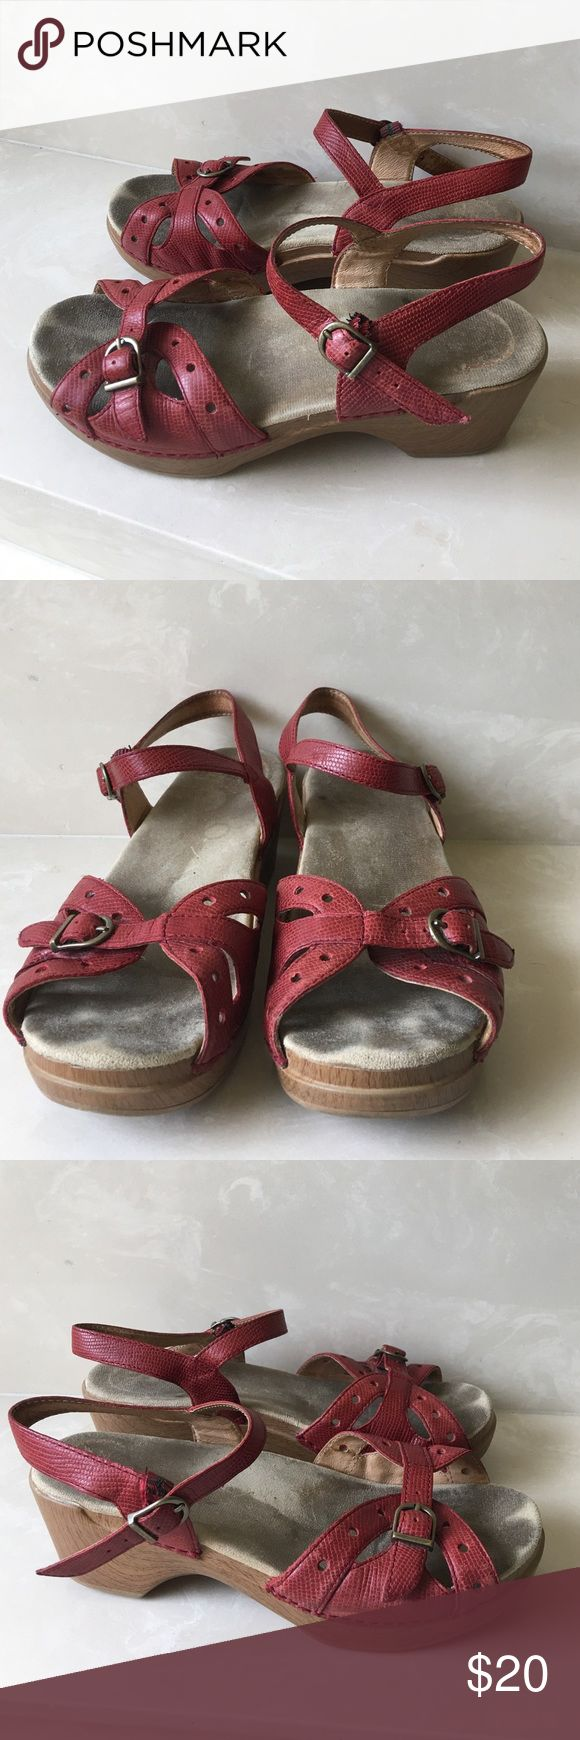 Authentic Dansko red leather sandals sz 39 US 8 Authentic Dansko red leather sandals sz 39 US 8 insoles are dirty and have marks and the elastic fasteners have some wear and will need to be reinforced. Sold as is final sale price listed please no offers Dansko Shoes Sandals